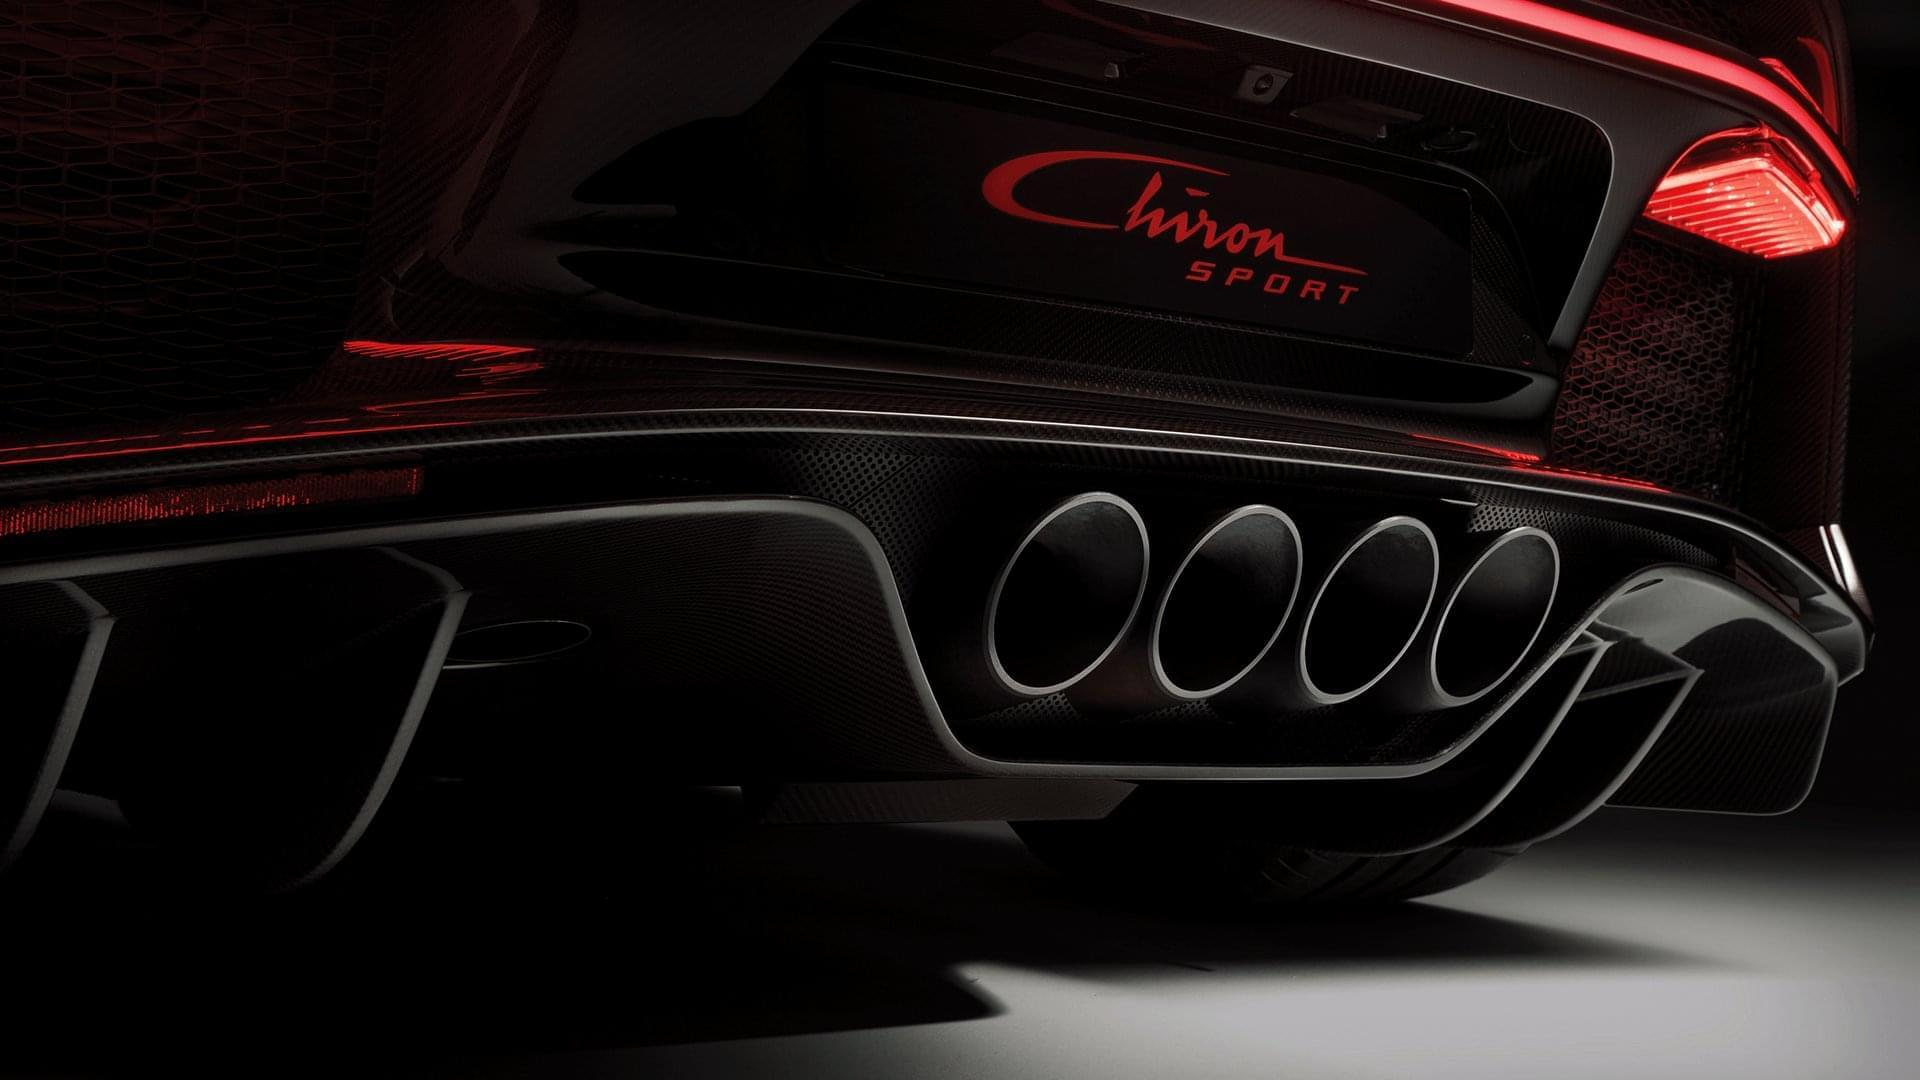 Chiron tailpipes